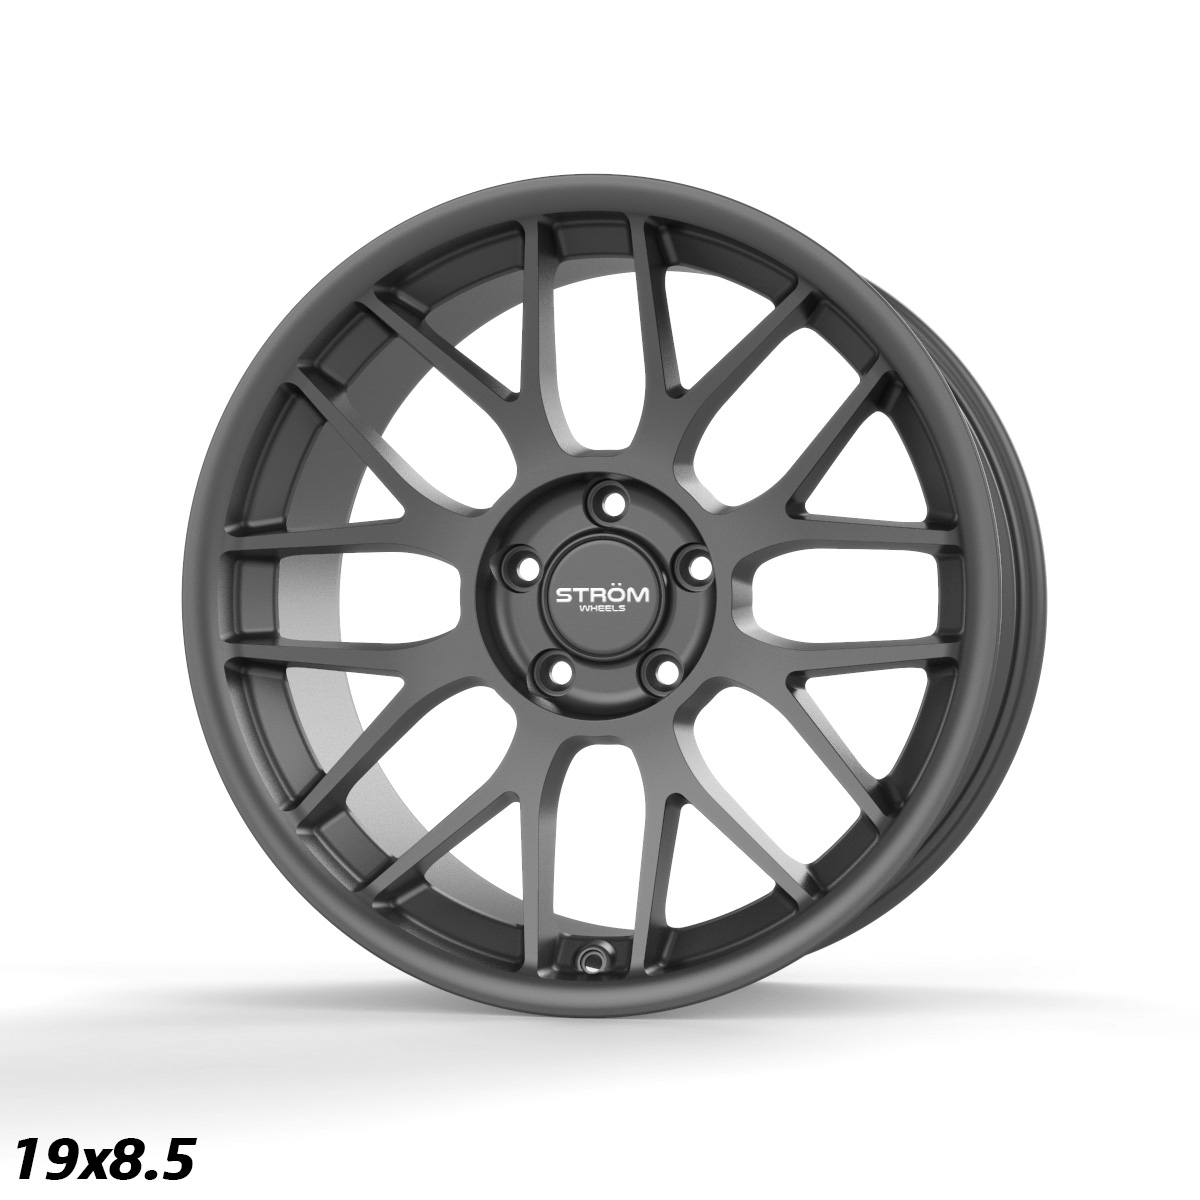 "NEW 19"" STROM STR2 ALLOY WHEELS IN GLOSS GUNMETAL WITH DEEPER CONCAVE 9.5"" REARS"